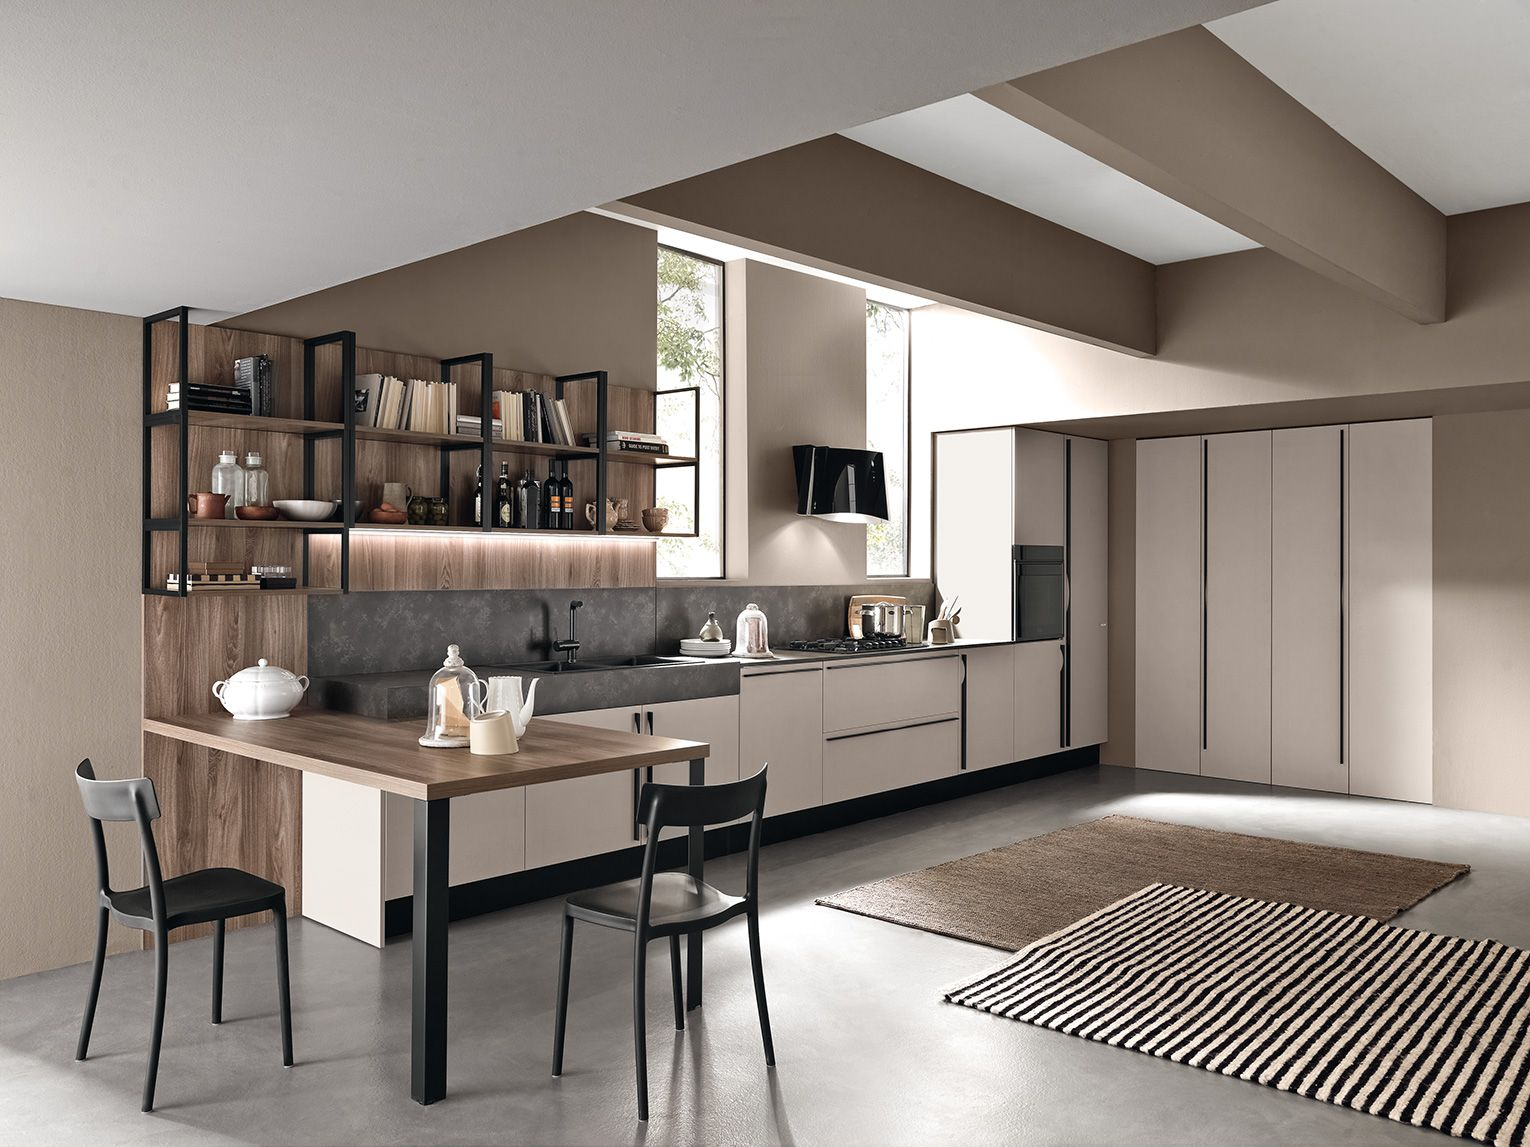 Marina 3.0 - Cucine Moderne - Cucine - Febal Casa | KITCHEN IDEAS ...